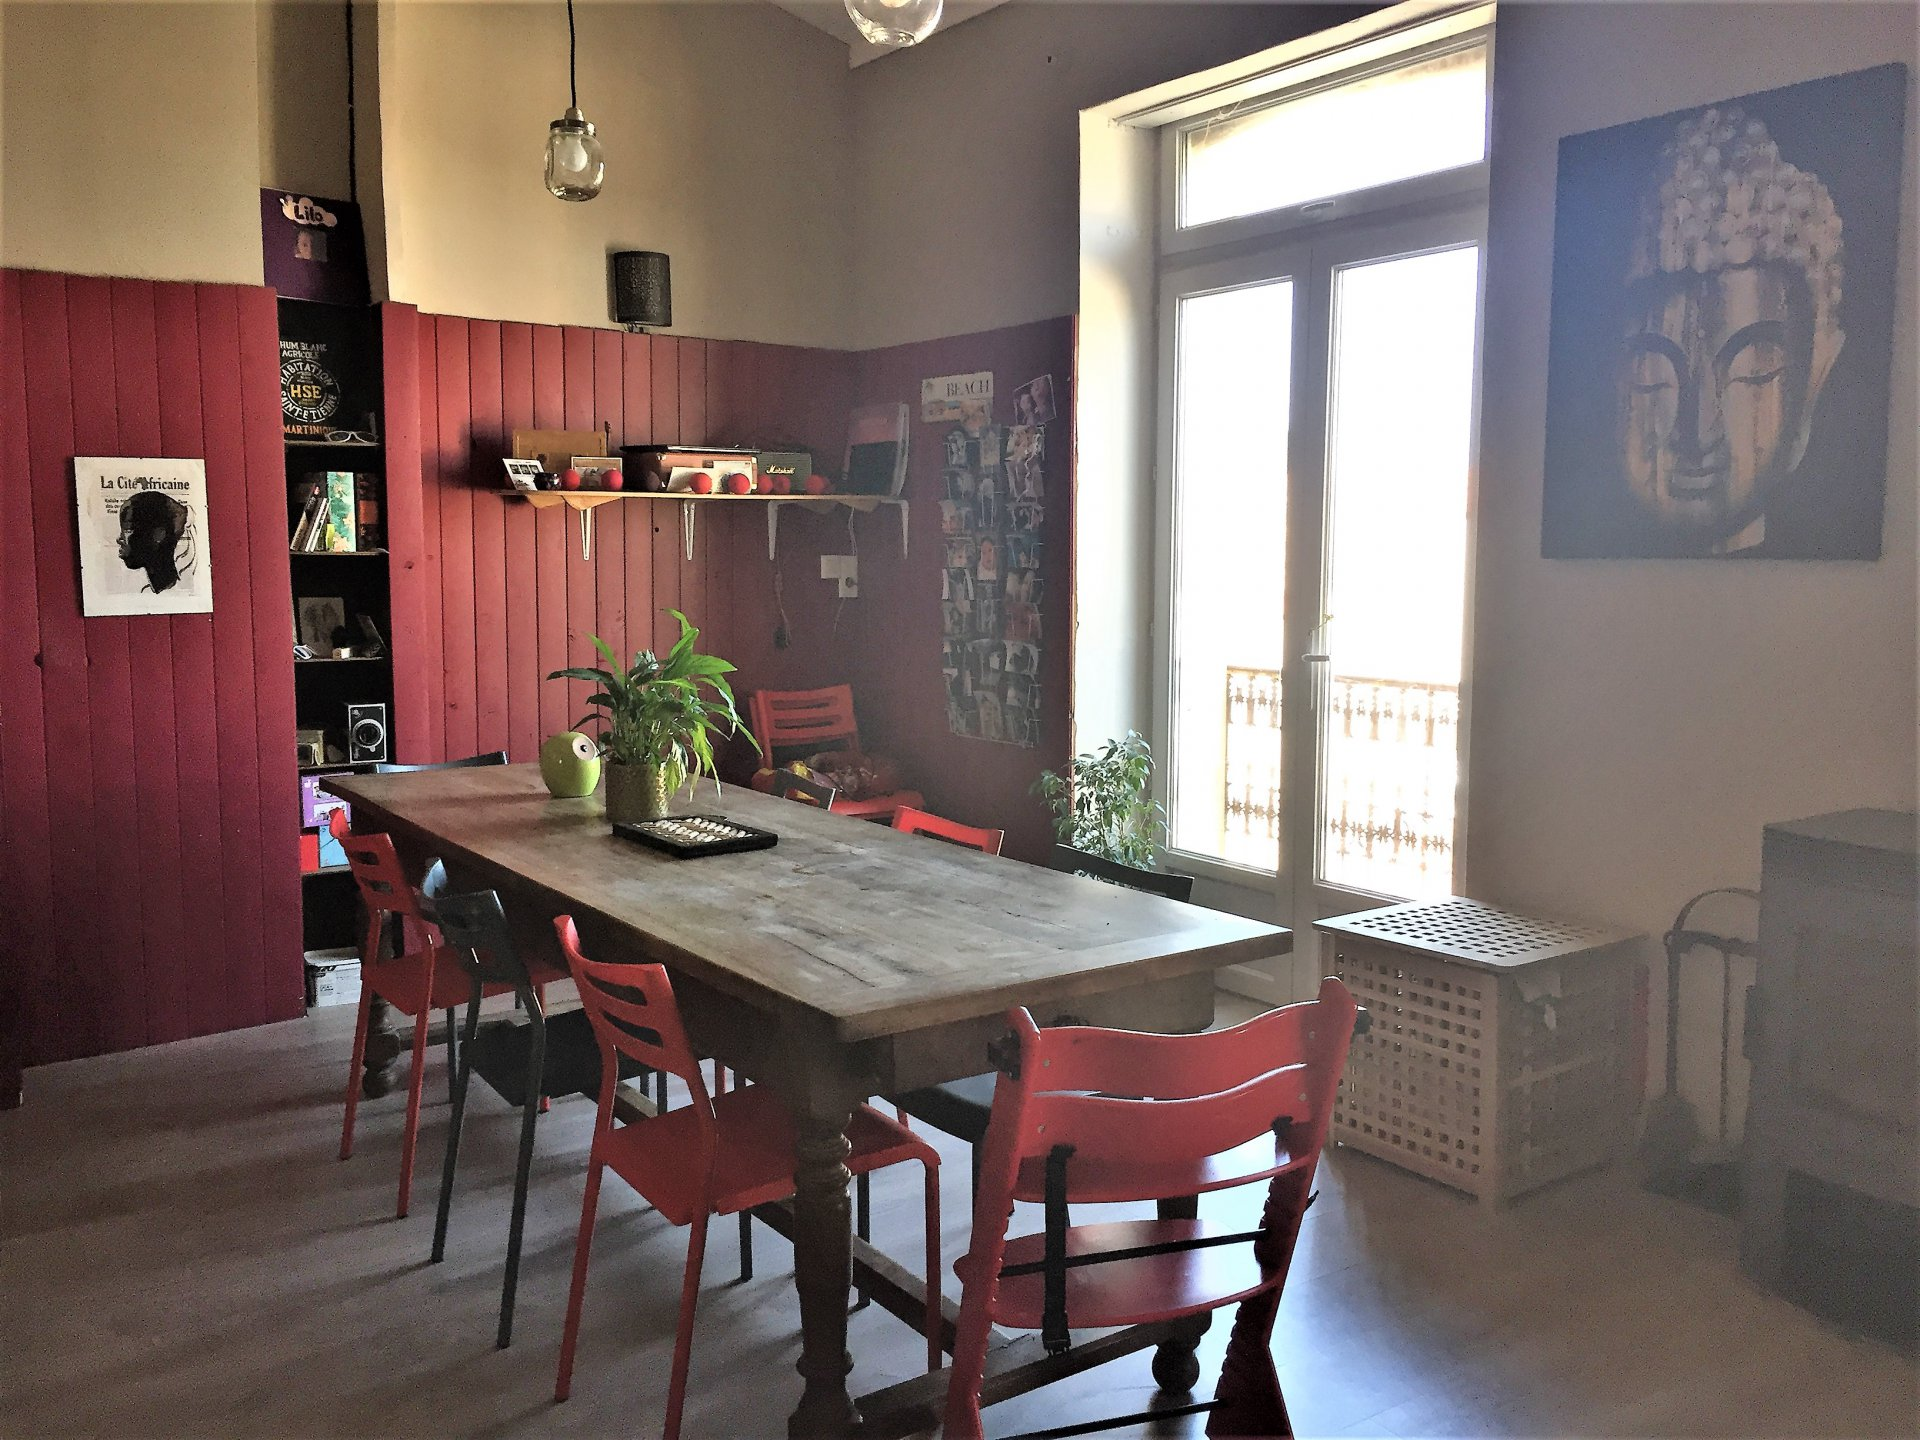 Ensemble immobilier de 3 appartements